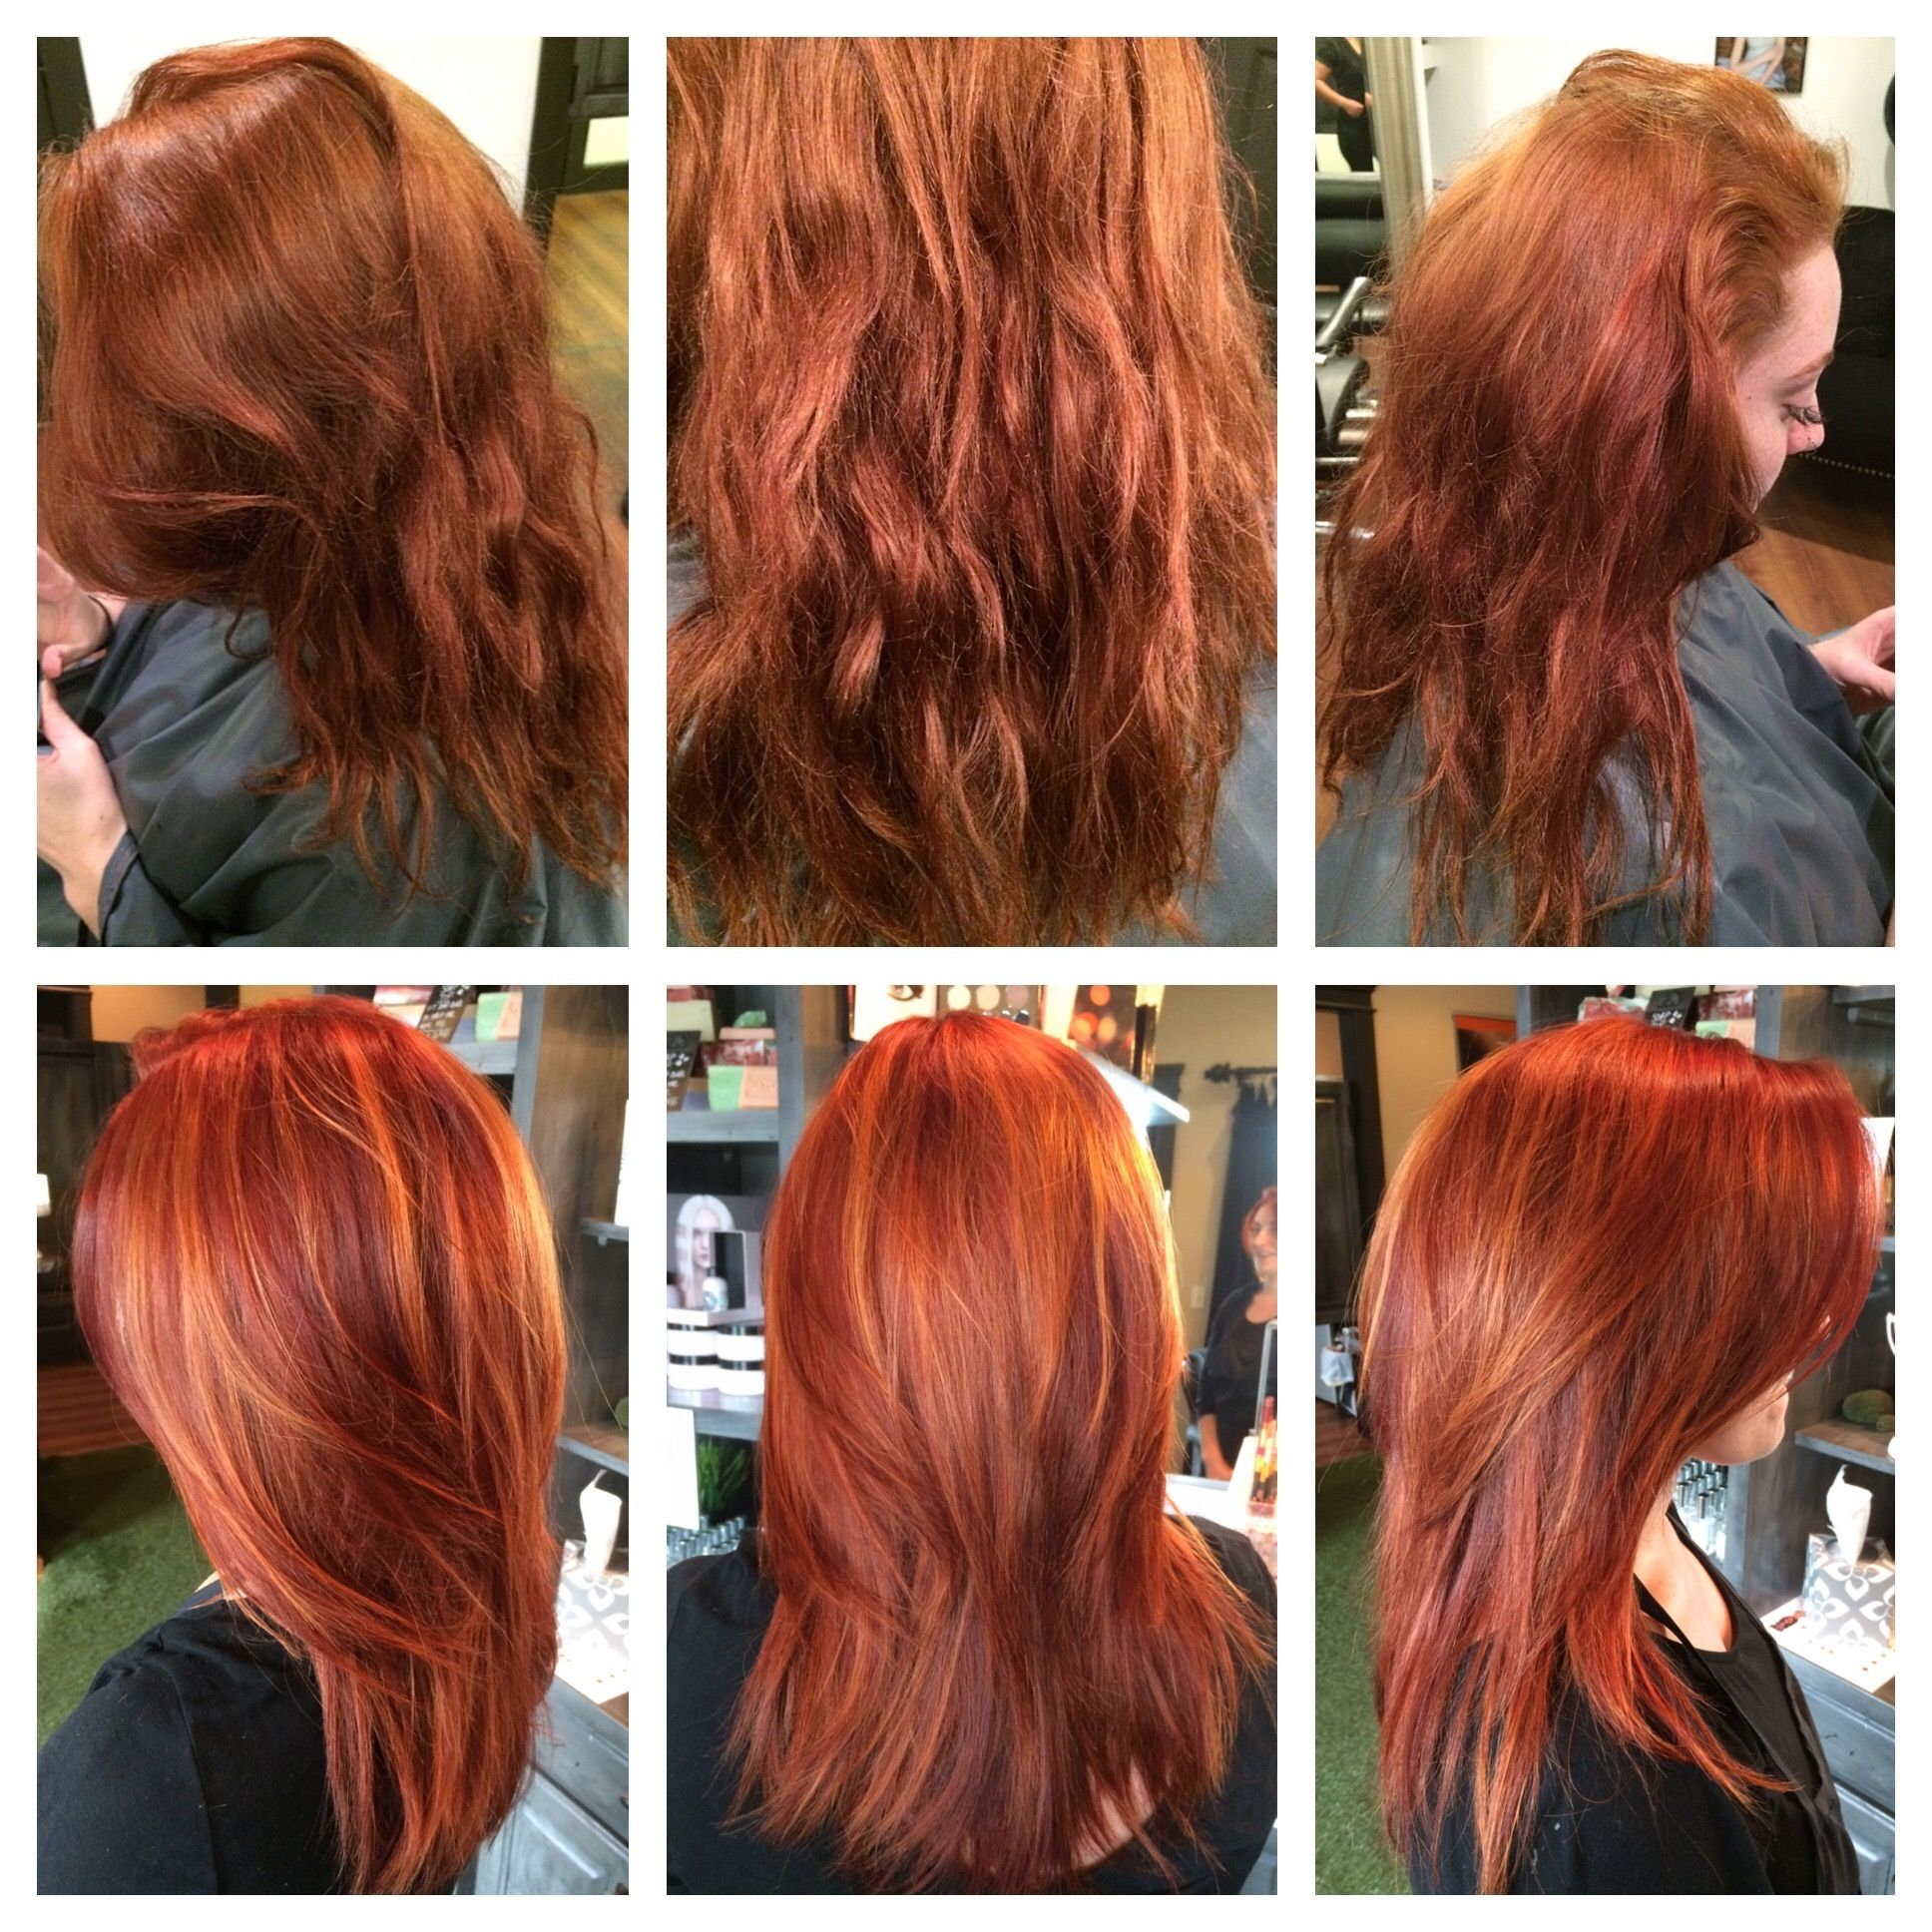 Before After Redhead Red Hair Copper Balayage Gold Balayage Hair Brunette Long Red Hair With Highlights Merlot Hair Color